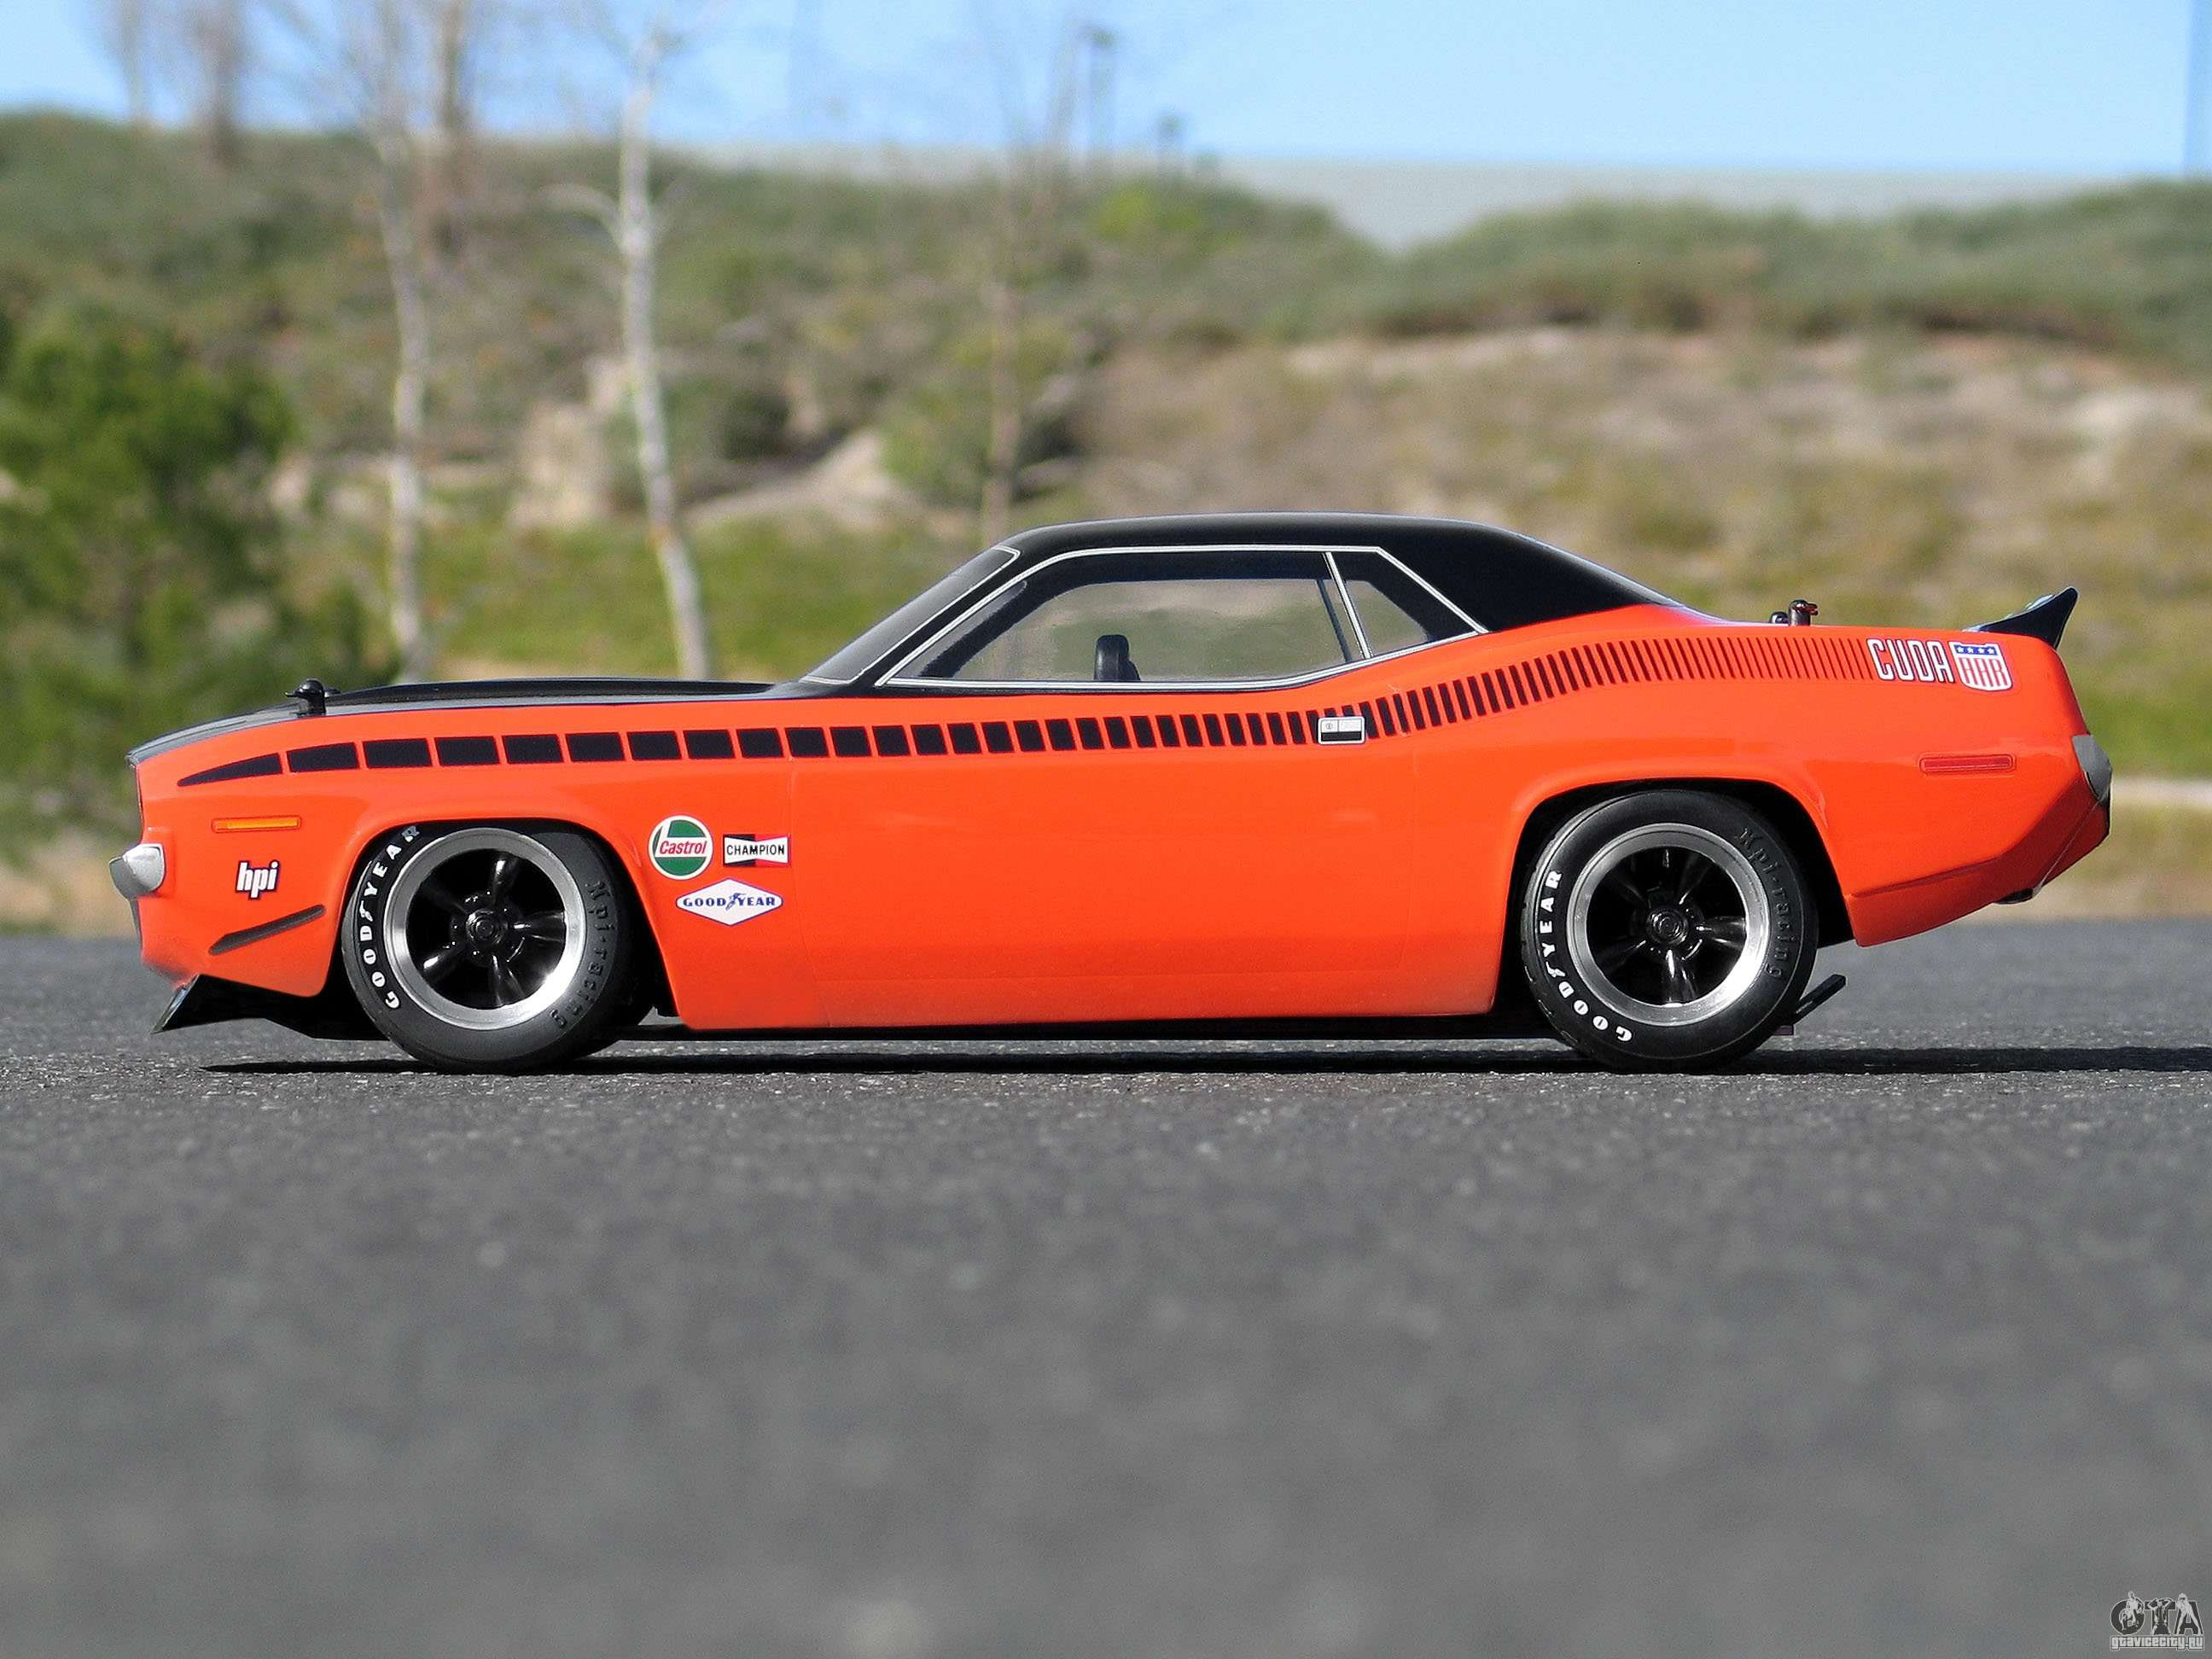 nitro rc cars and trucks with 6990 Plymouth Hemi Cuda 1971 on Traxxas Deathrace Mustang likewise Traxxas Slash 4x4 Brushless 1 10 Scale Electric 4wd Short Course Truck W 24ghz Radio further 104 Early RC10 additionally 111763506308 moreover Mad Media Photography Featured In Racer Magazine.